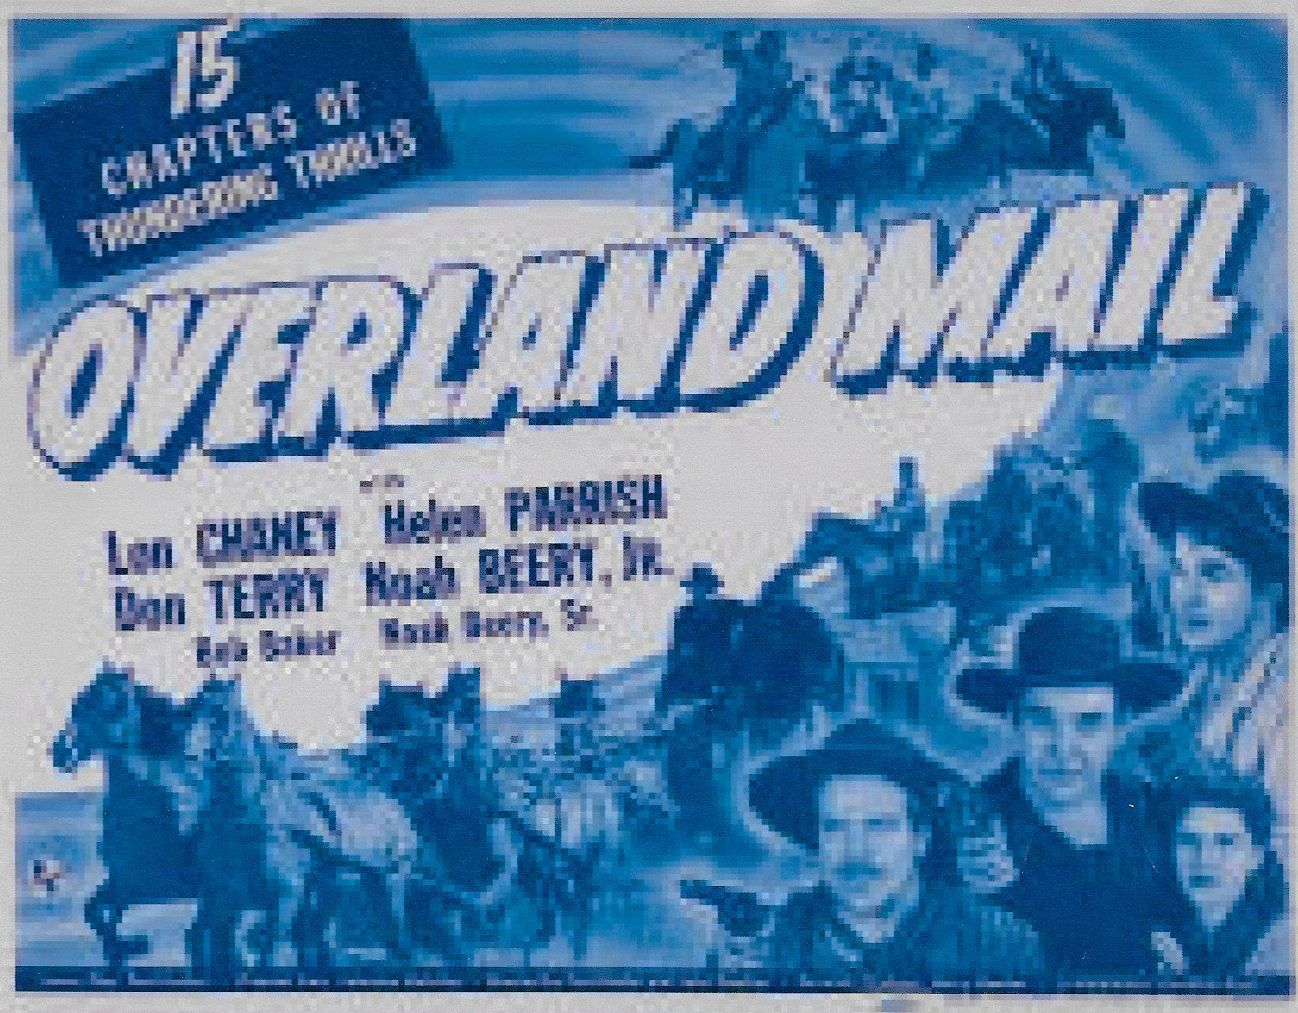 Noah Beery Jr., Lon Chaney Jr., Helen Parrish, and Don Terry in Overland Mail (1942)